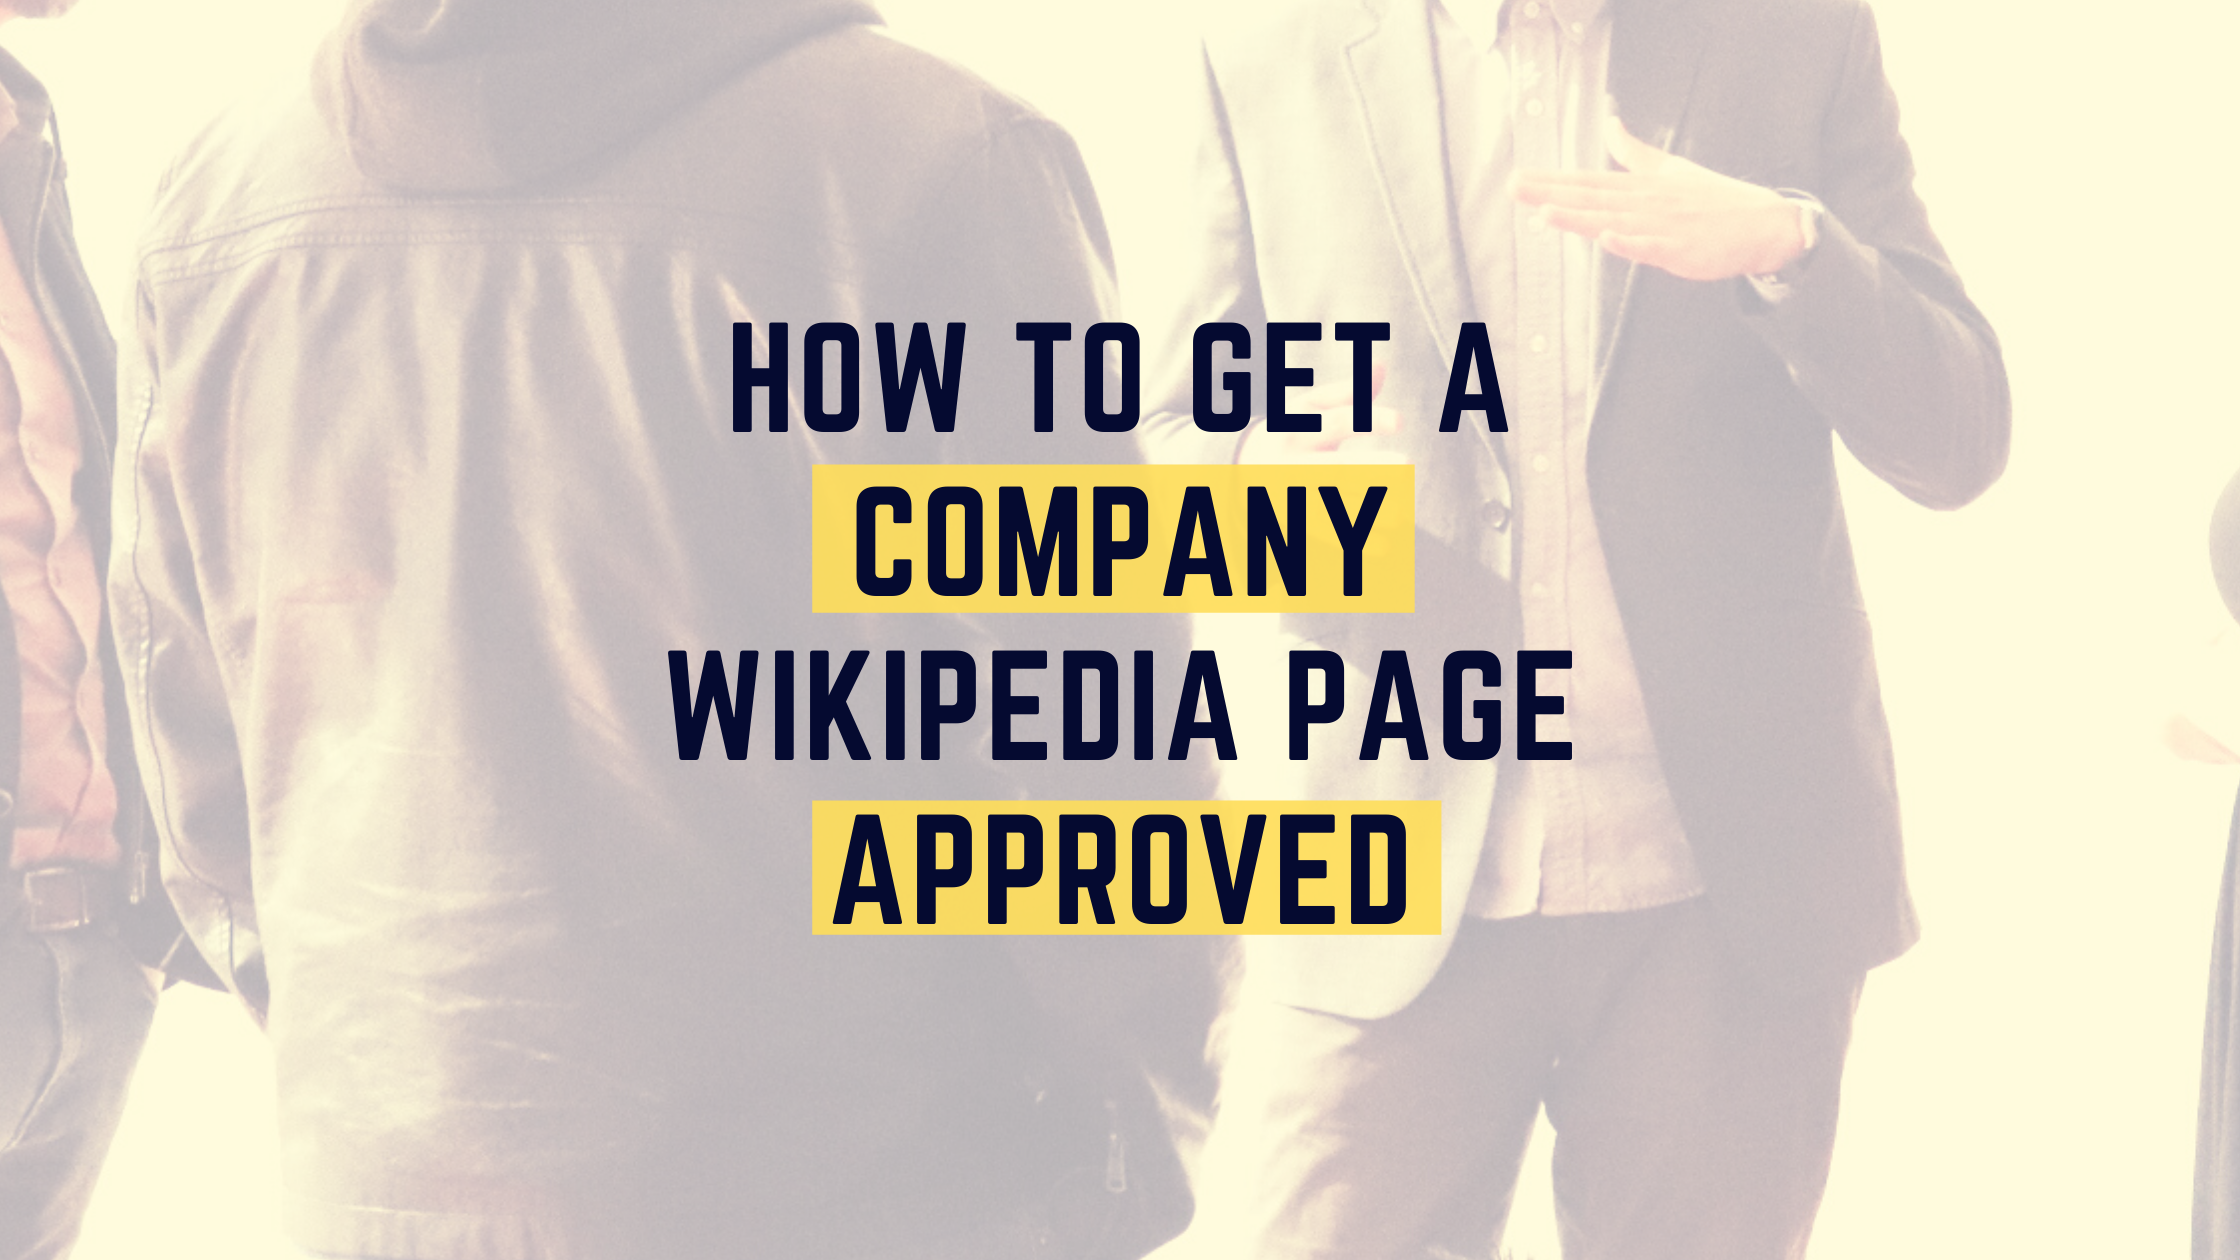 How to Get a Company Wikipedia Page Approved text over blurry image of ppl talking